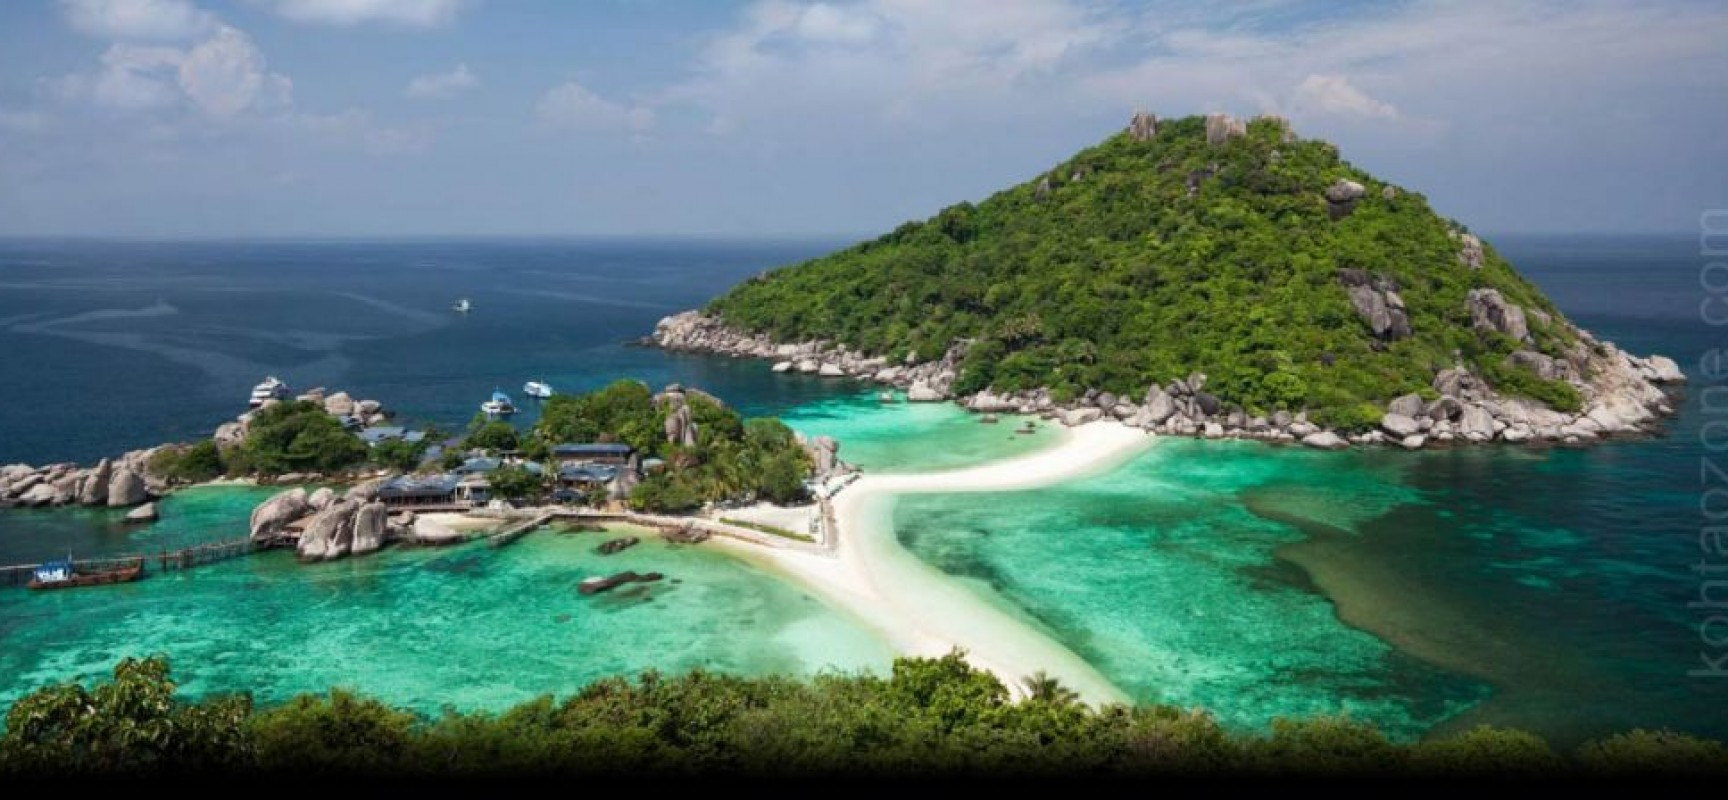 Koh tao turtle island in thailand travel featured for Hotels koh tao